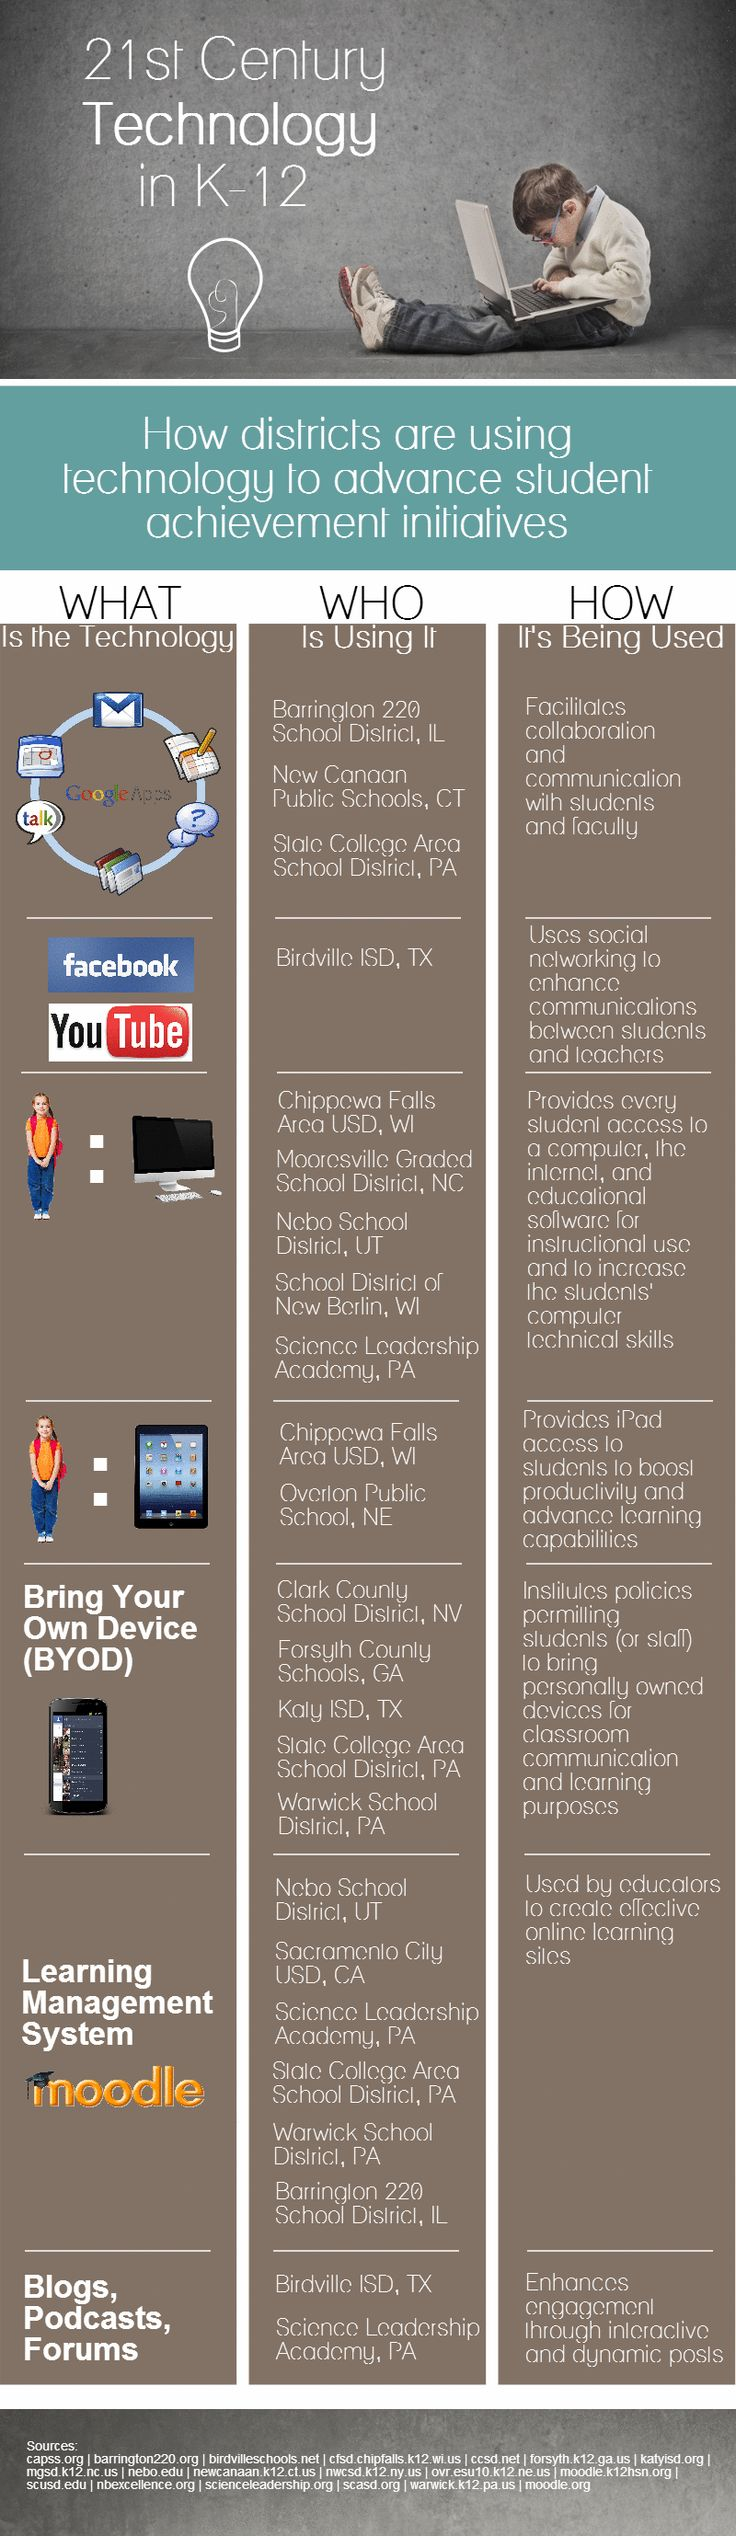 [Infographic] 21st Century Technology in K-12 - EdTechReview™ (ETR)